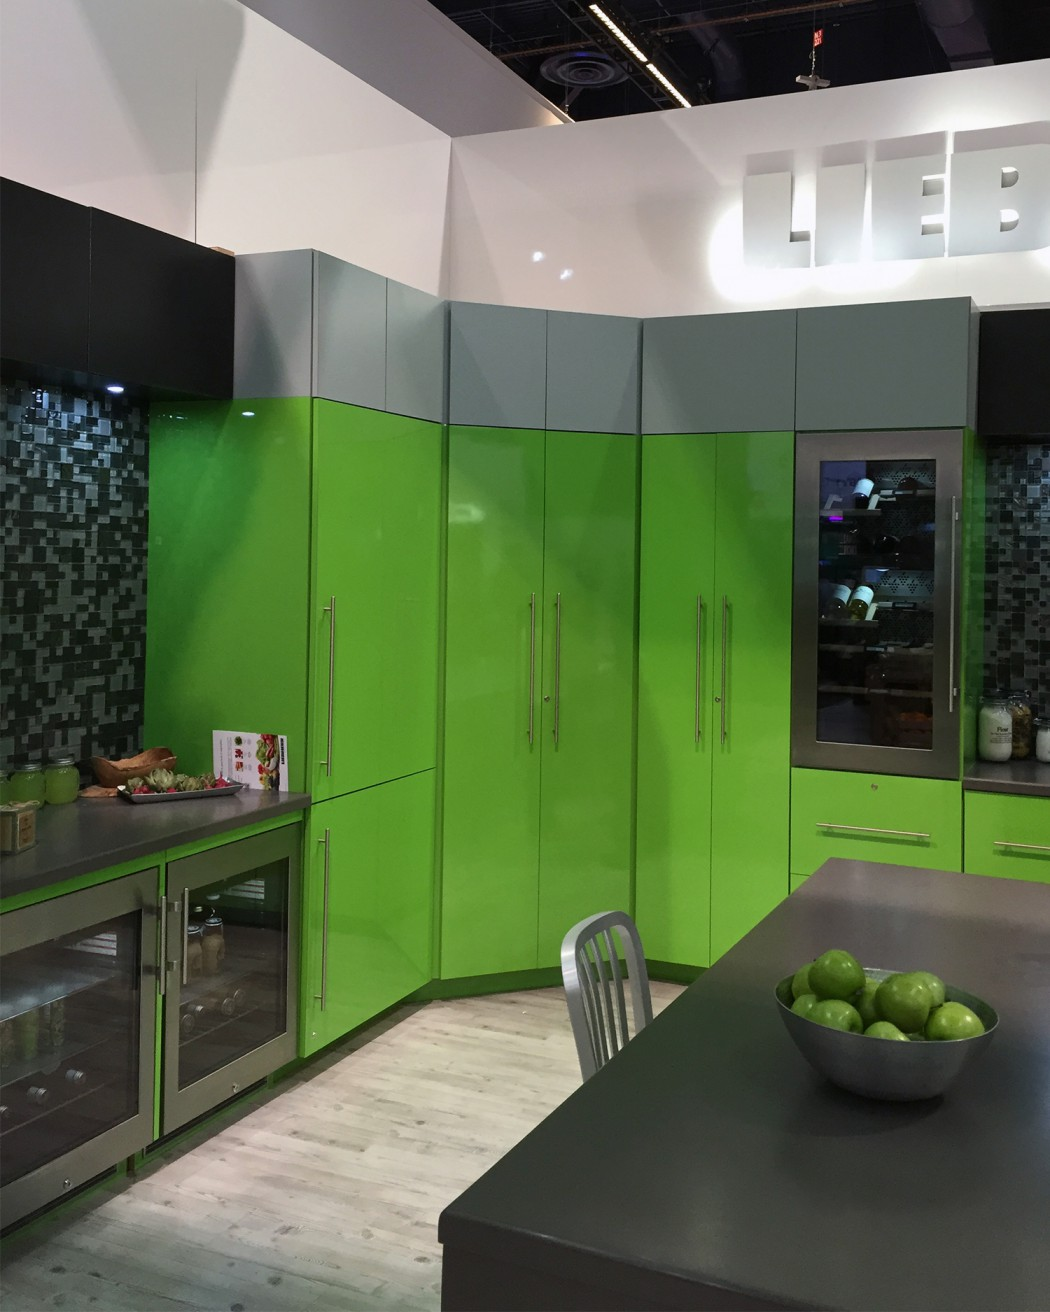 KBIS 2015 DCTC Interior Design